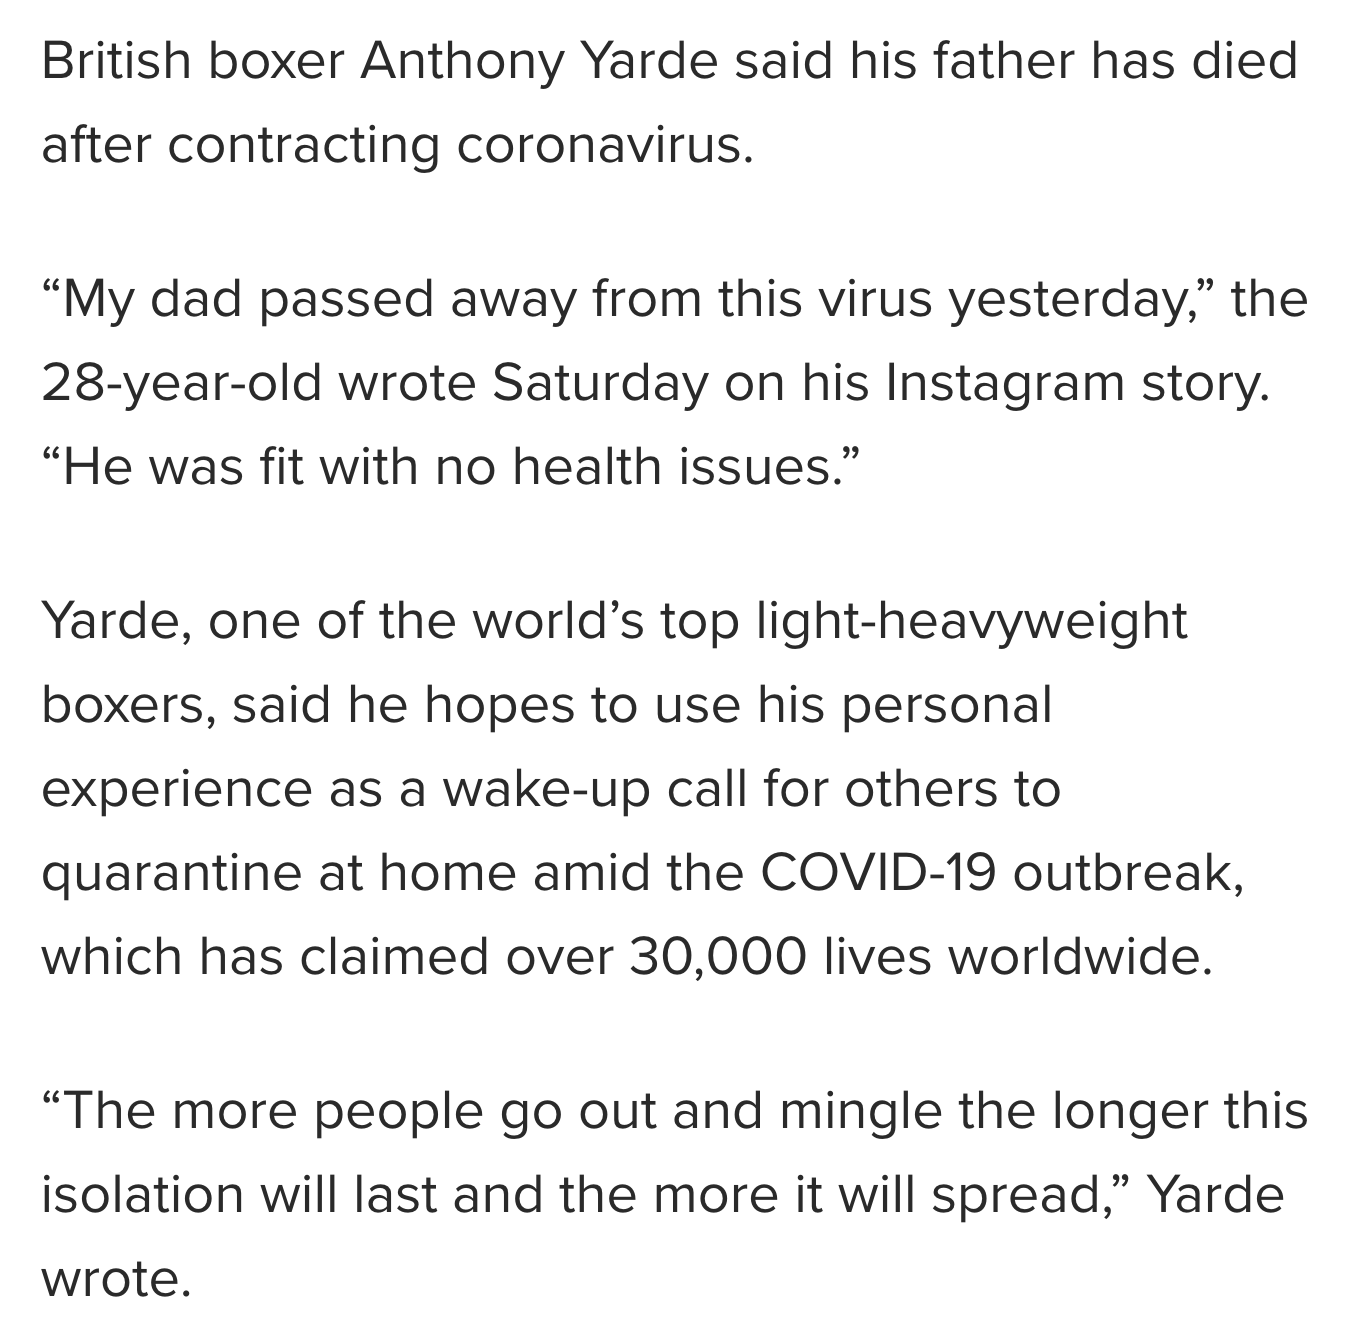 Boxer Anthony Yarde's Father Dies From Coronavirus, March